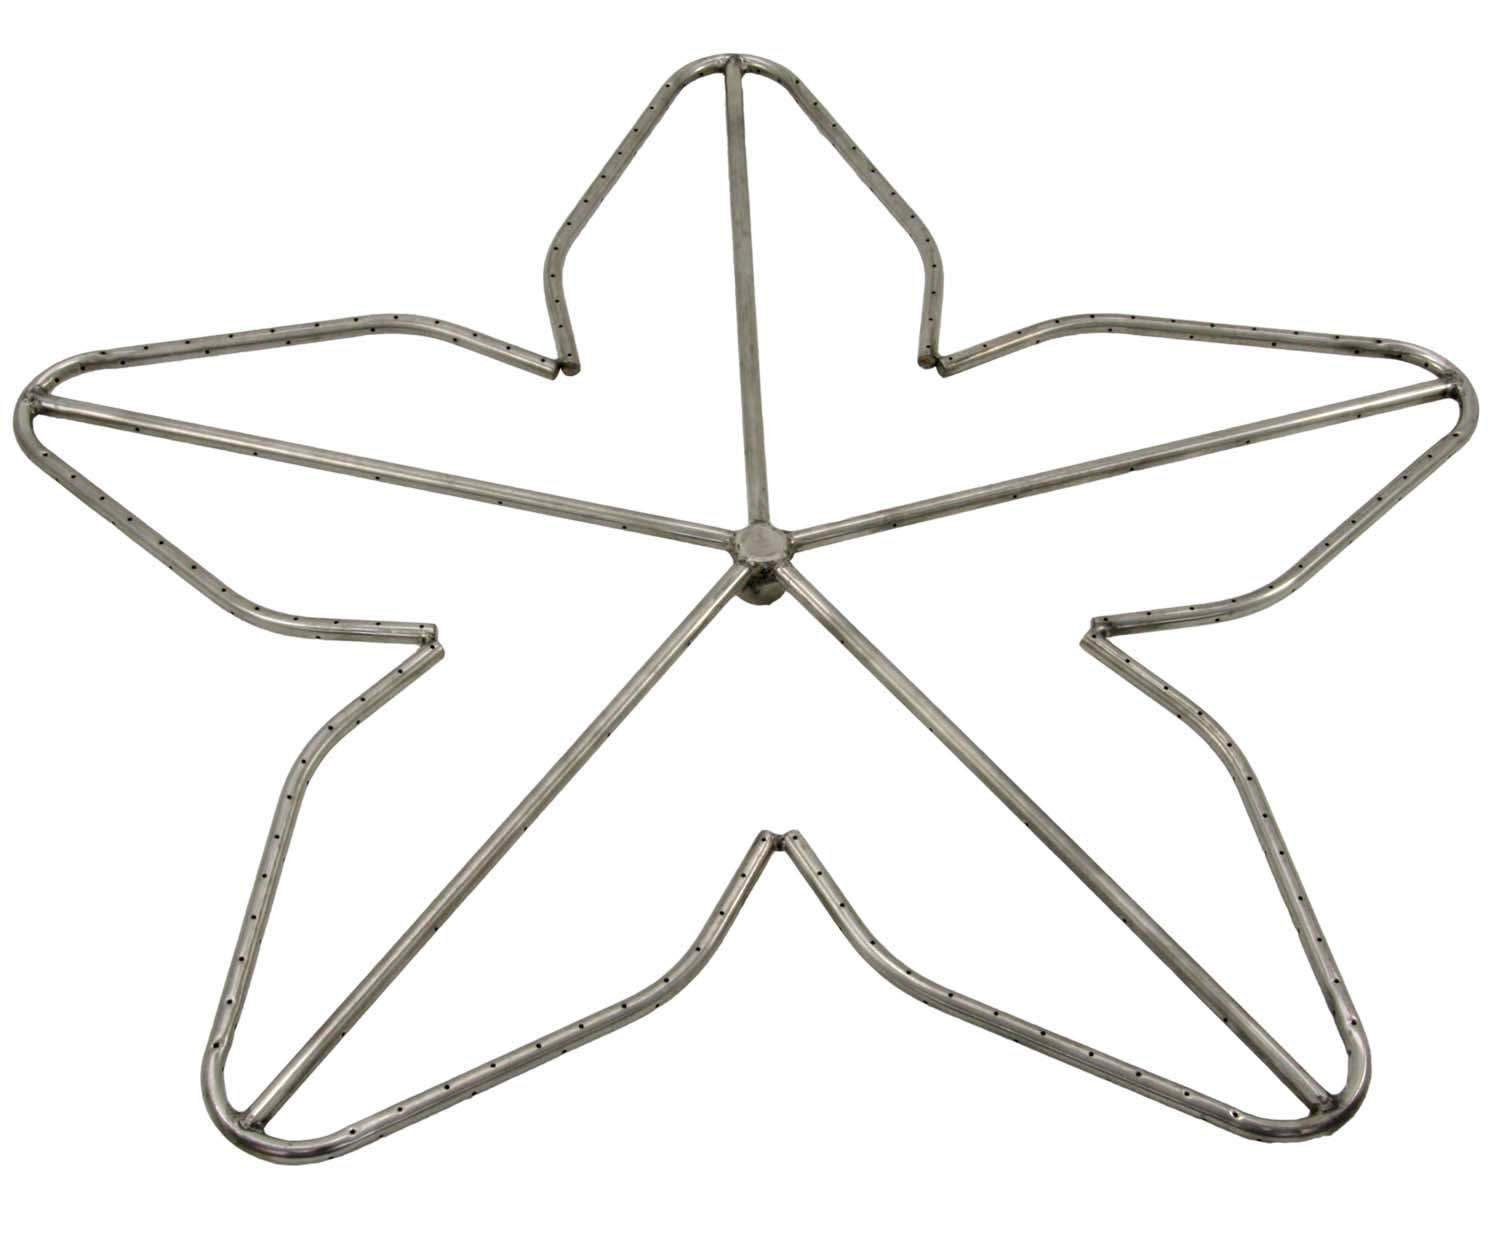 Hearth Products Controls (HPC) Penta Fire Pit Burner (PENTA36-NG), 36-Inch, Stainless Steel, Natural Gas